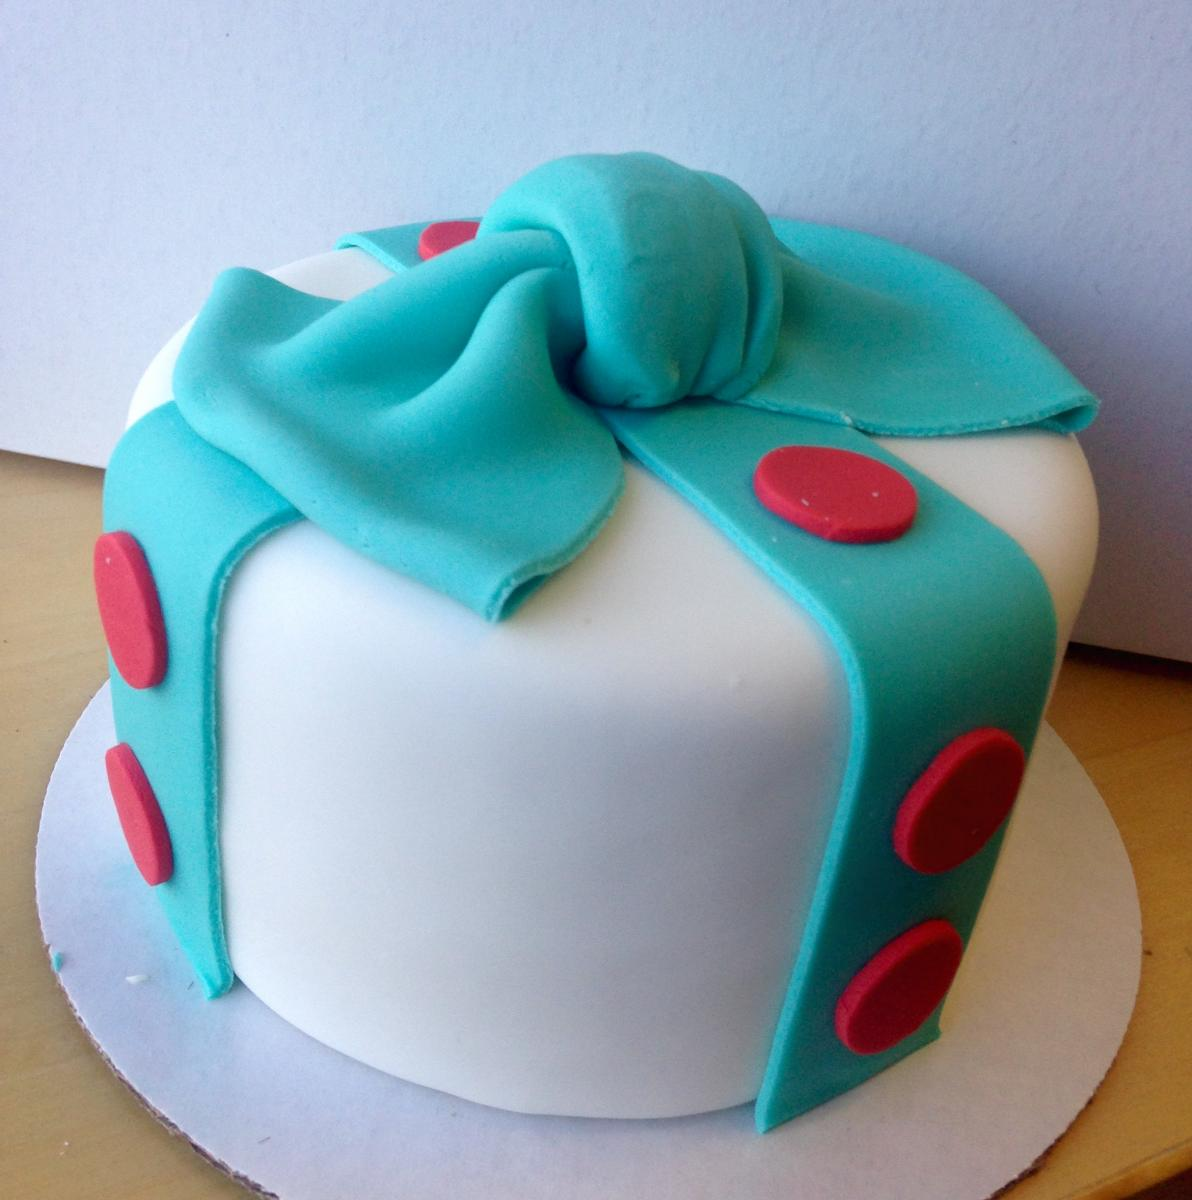 Zingerman's Bakehouse make fondant